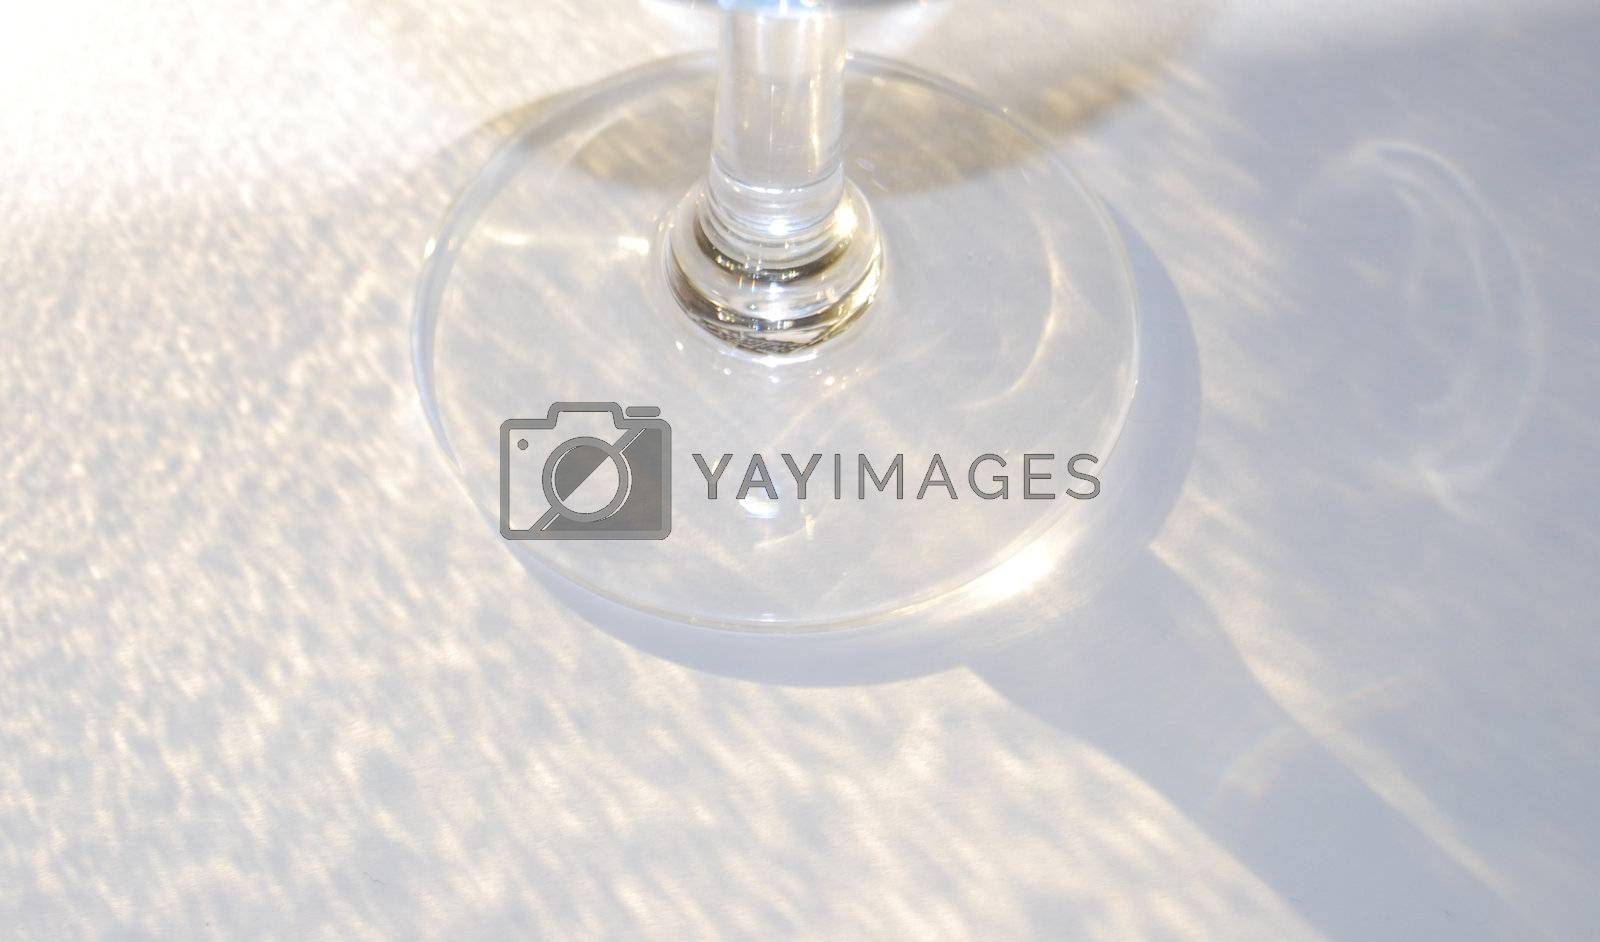 Handmade cristallglass with reflection